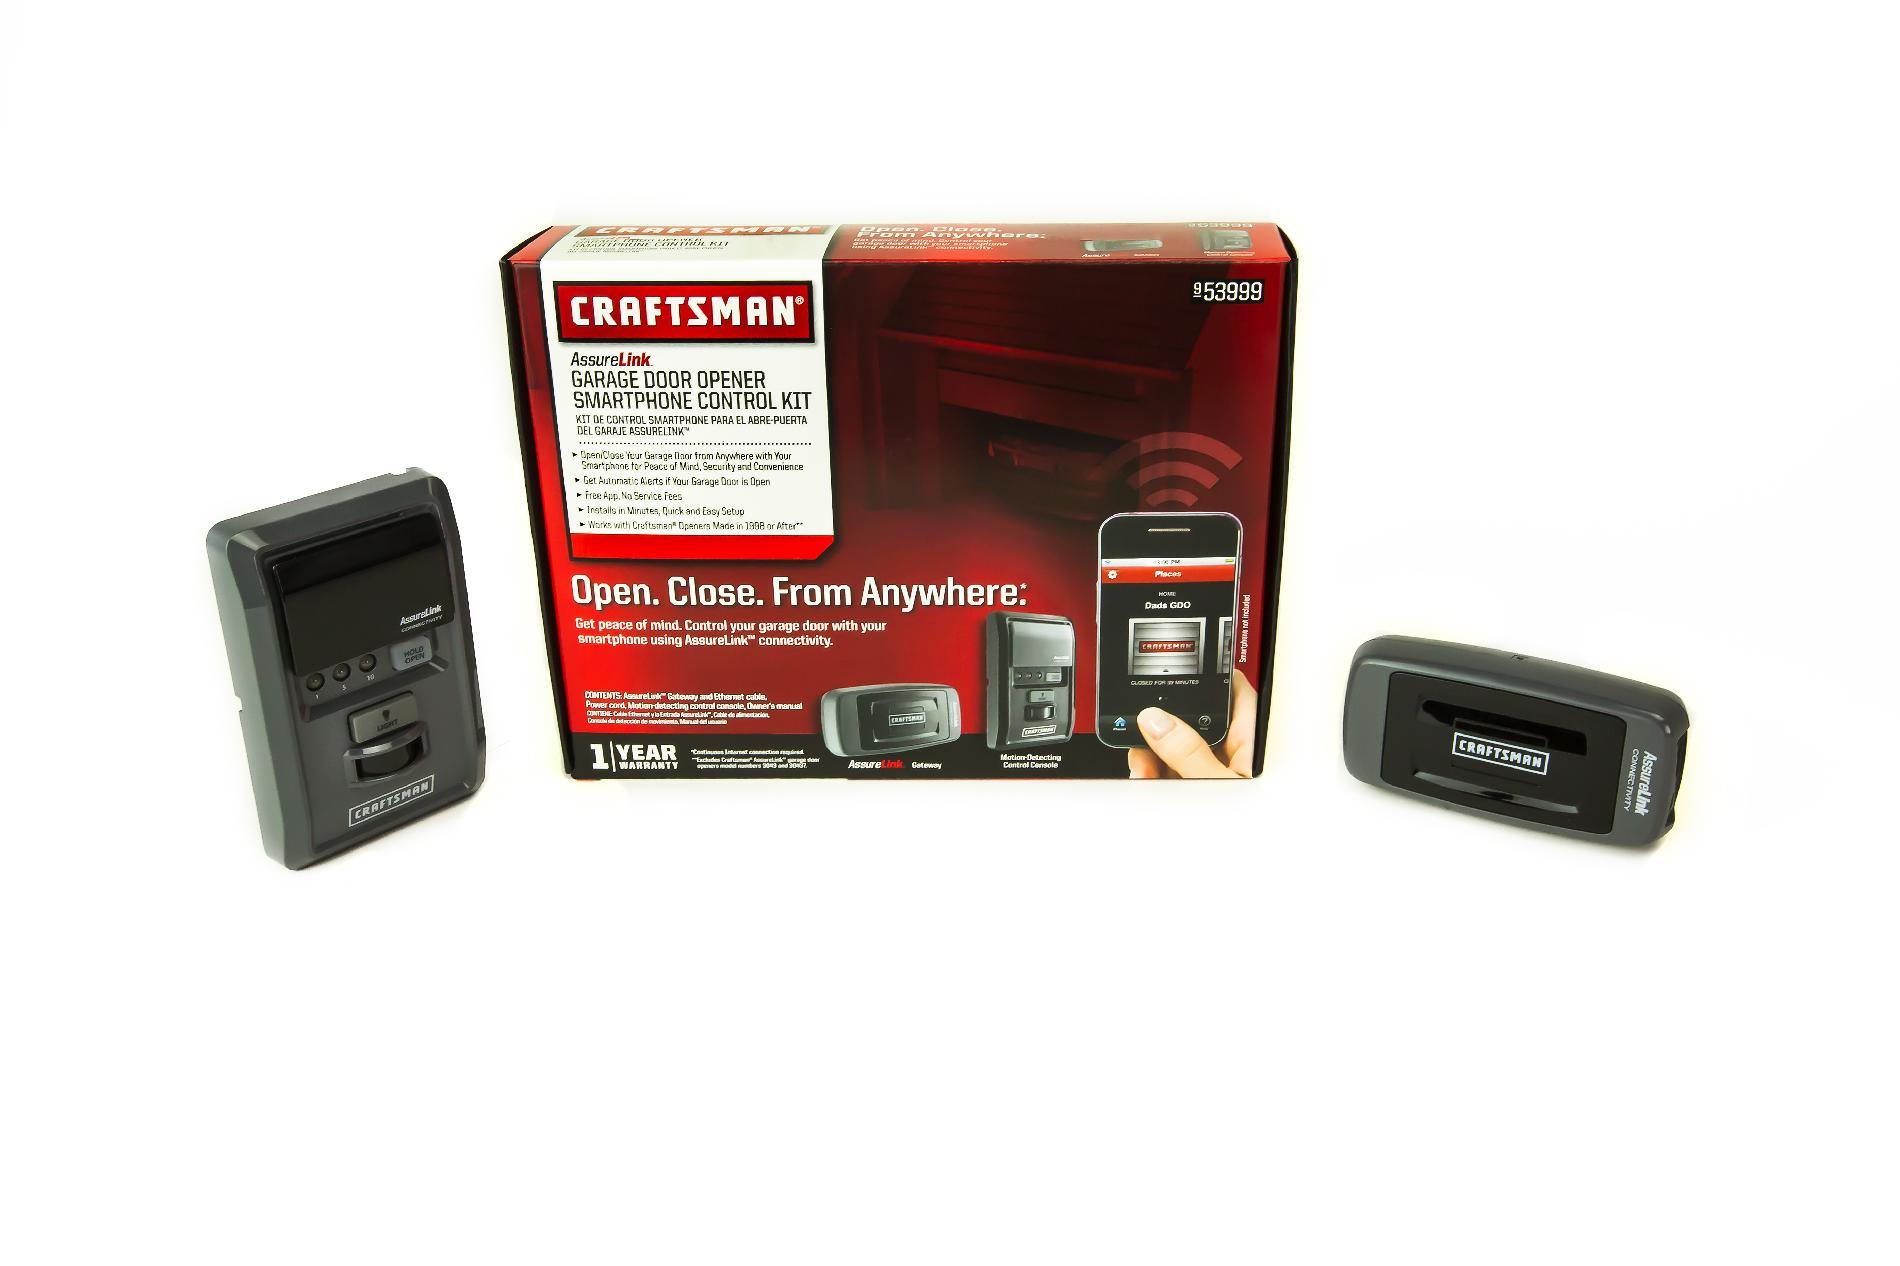 Craftsman AssureLink™ Garage Door Opener Smartphone Control Kit (No service fees  free app download)